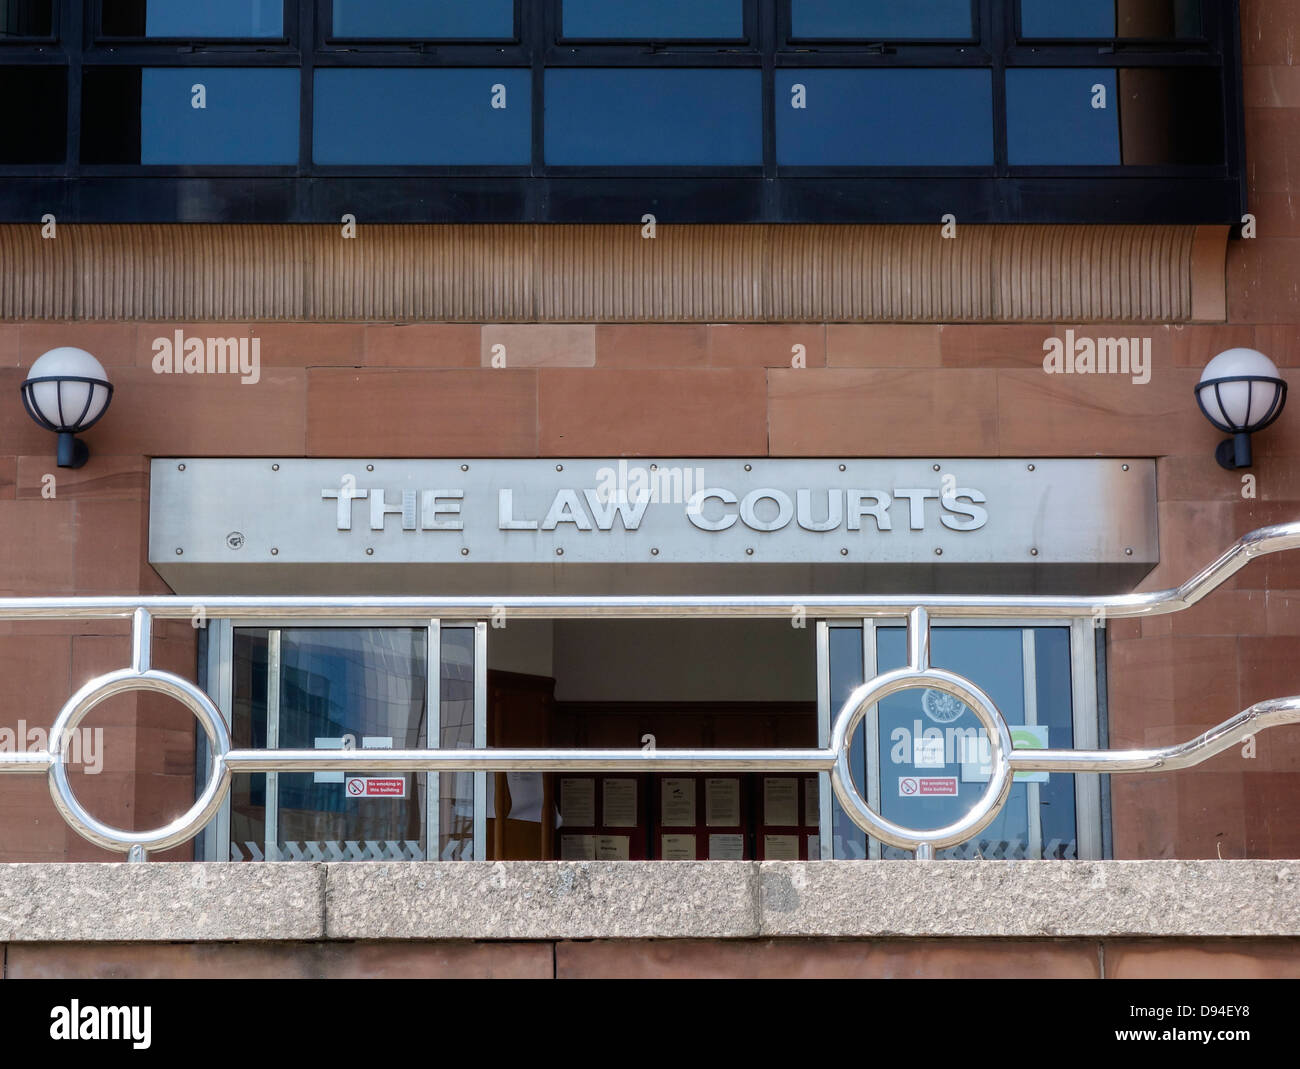 Combined Law Courts (Crown court) on Newcastle Quayside. Newcastle upon Tyne, England,UK - Stock Image